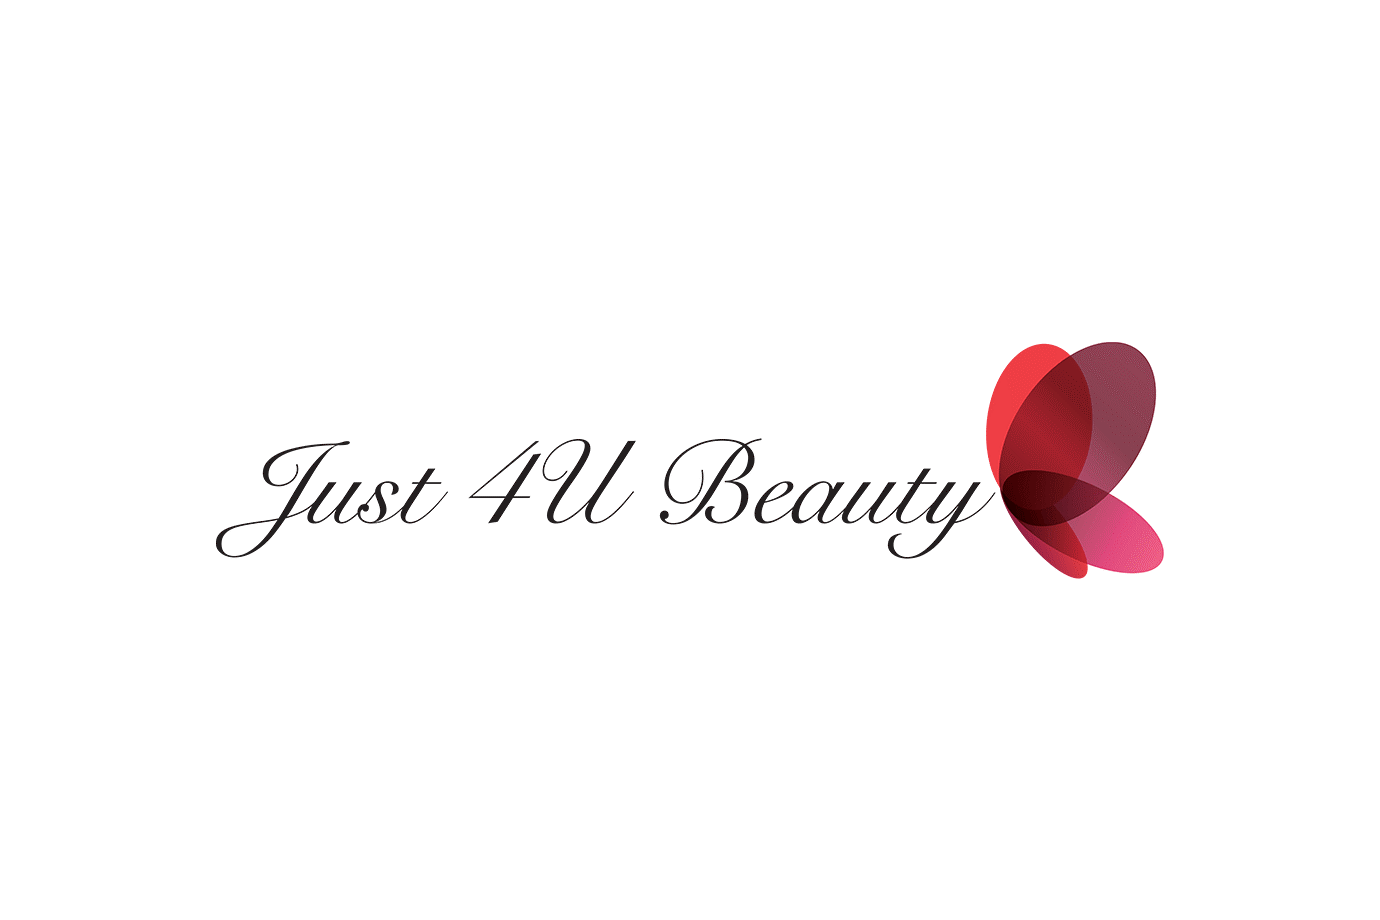 Just 4 U Beauty & Nail Bar logo